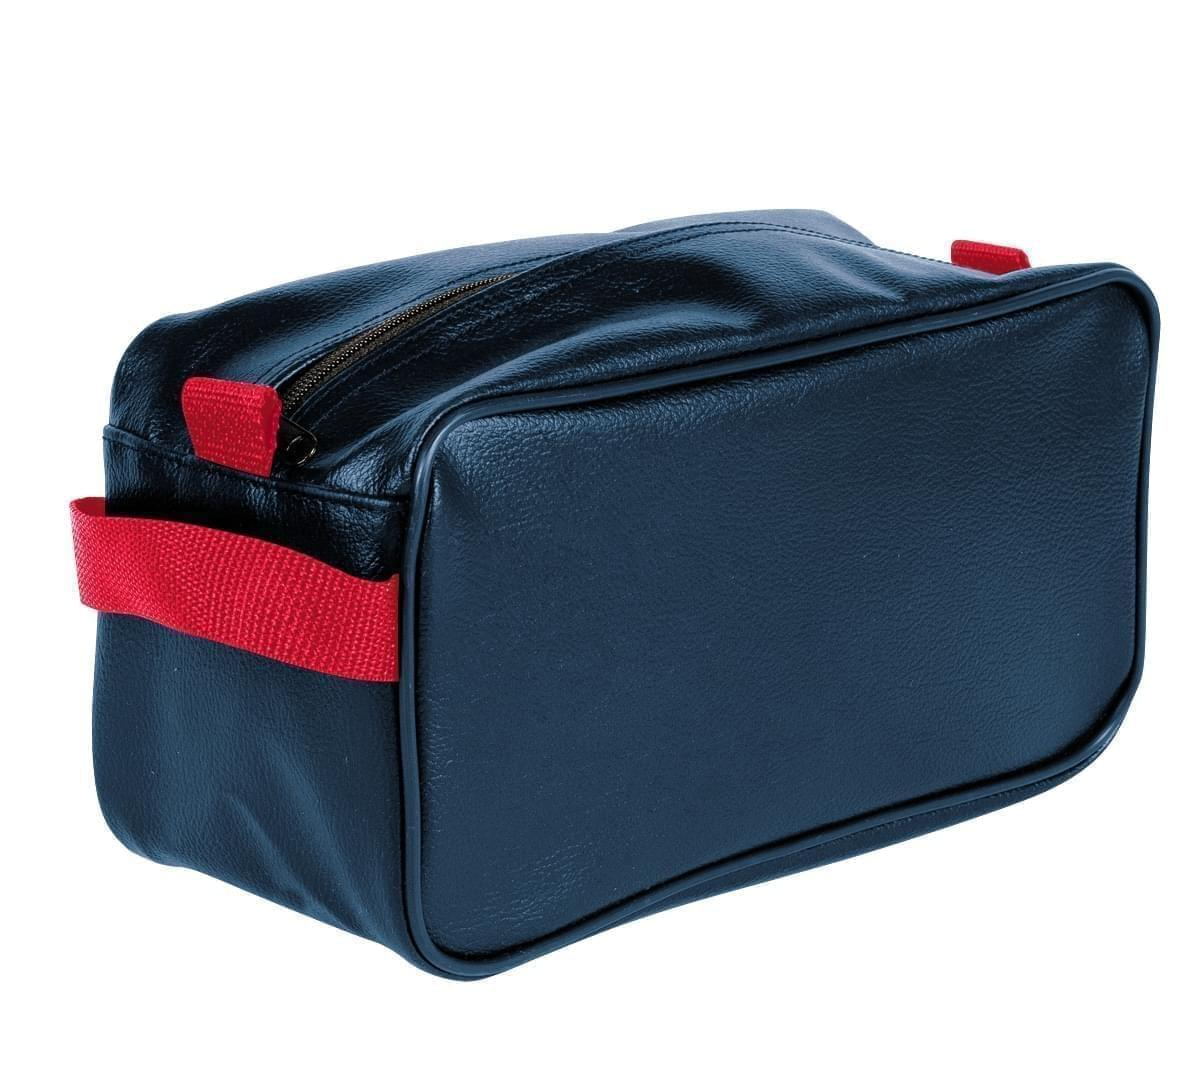 USA Made Cosmetic & Toiletry Cases, Navy-Red, 3000996-AW2